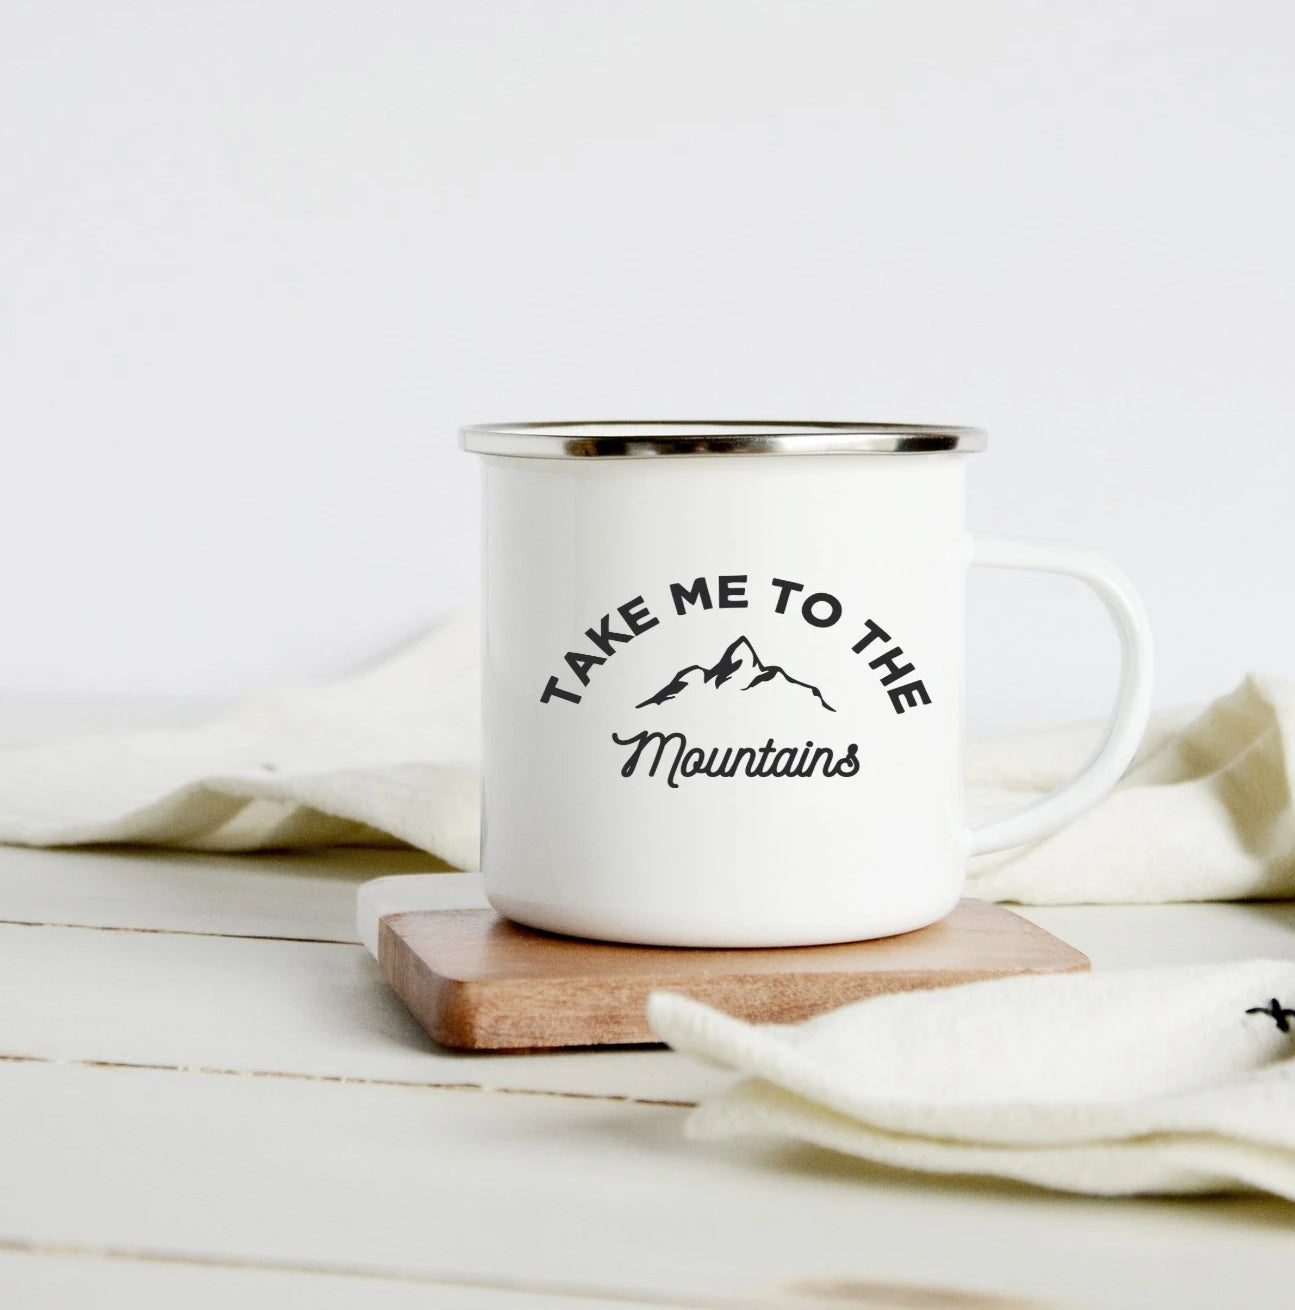 Take me to the mountains 10oz camp mug